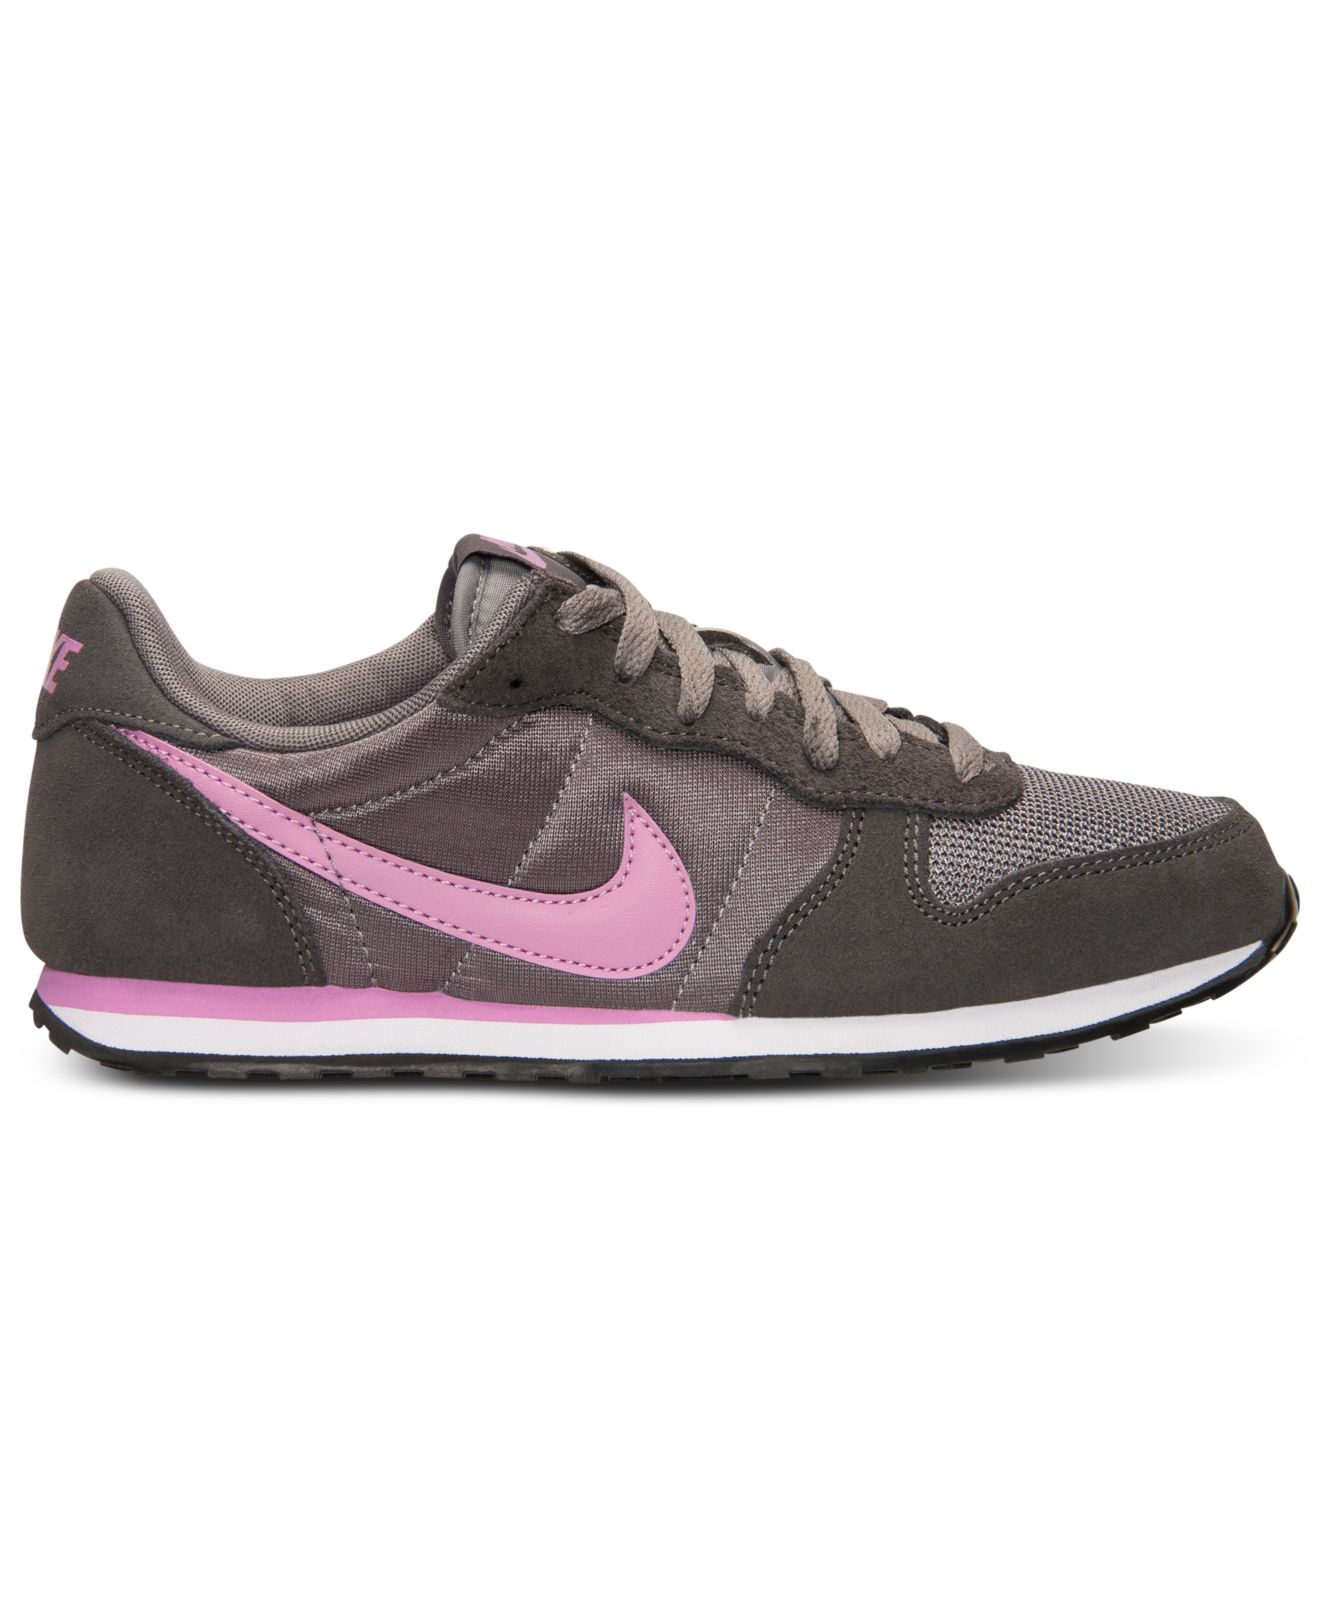 Lyst - Nike Women's Genicco Casual Sneakers From Finish ...